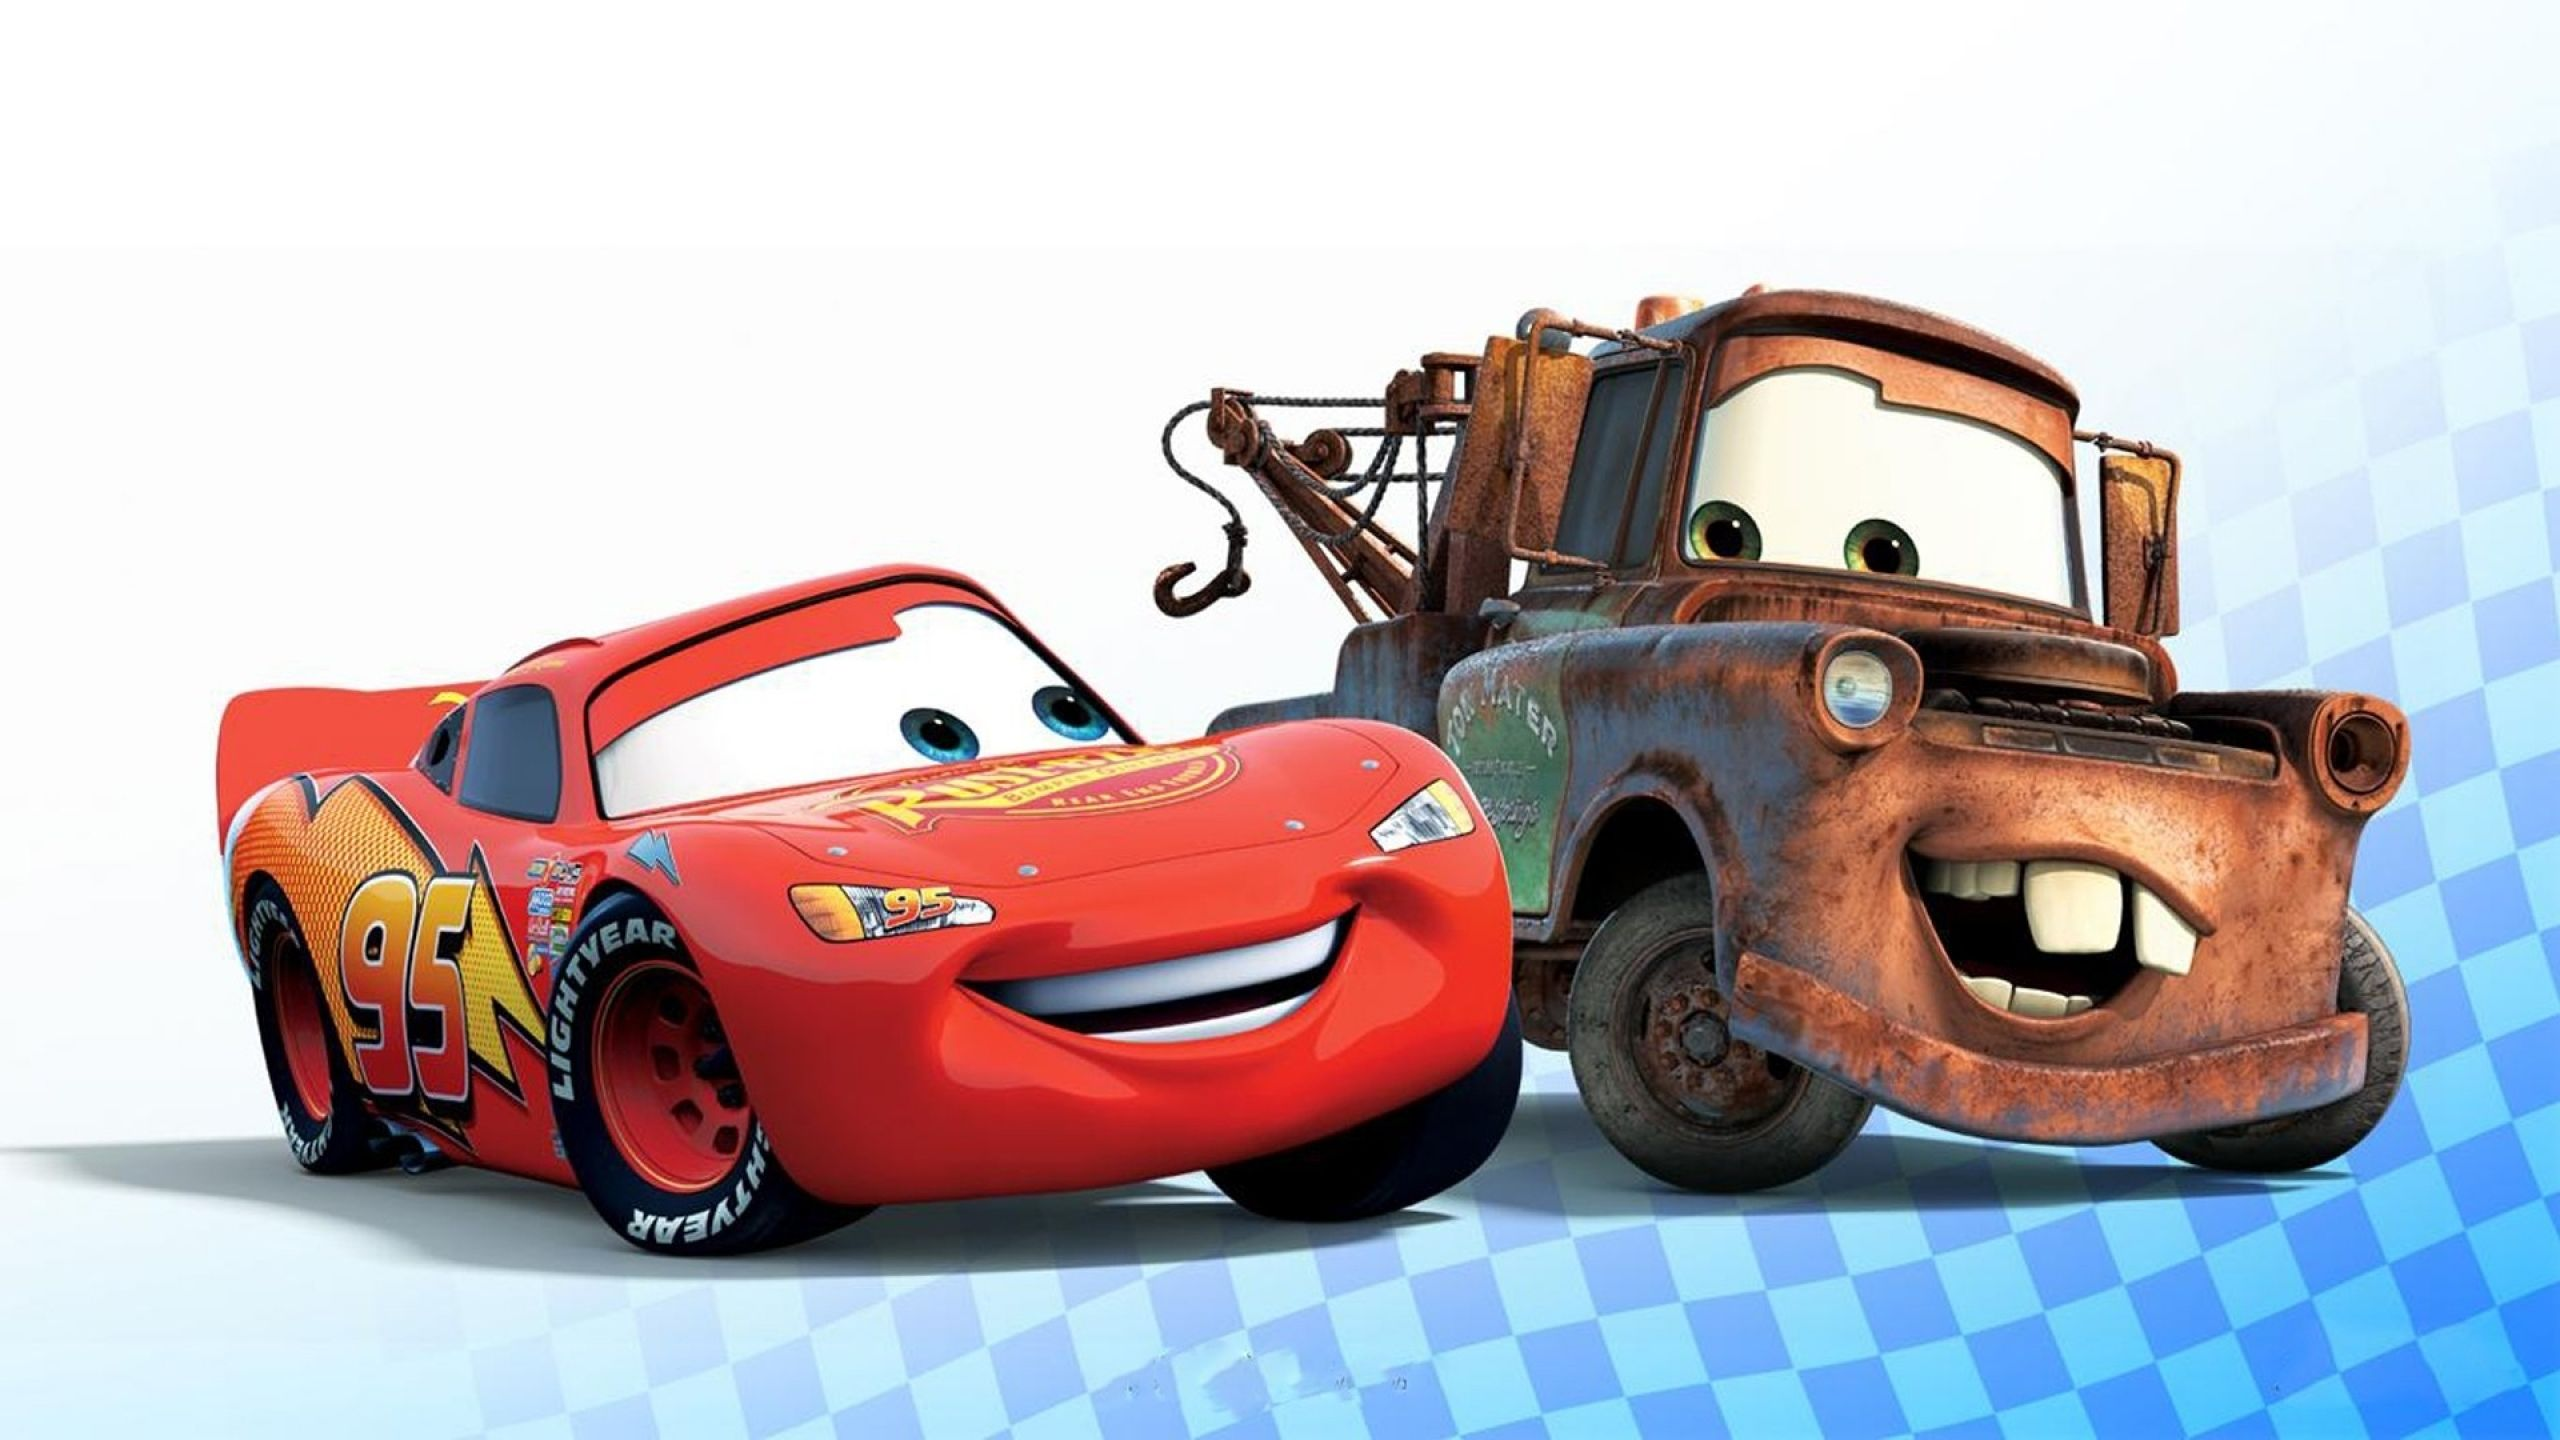 Pixar Movies Cars Mater Lightning Mcqueen Disney 1920x1080